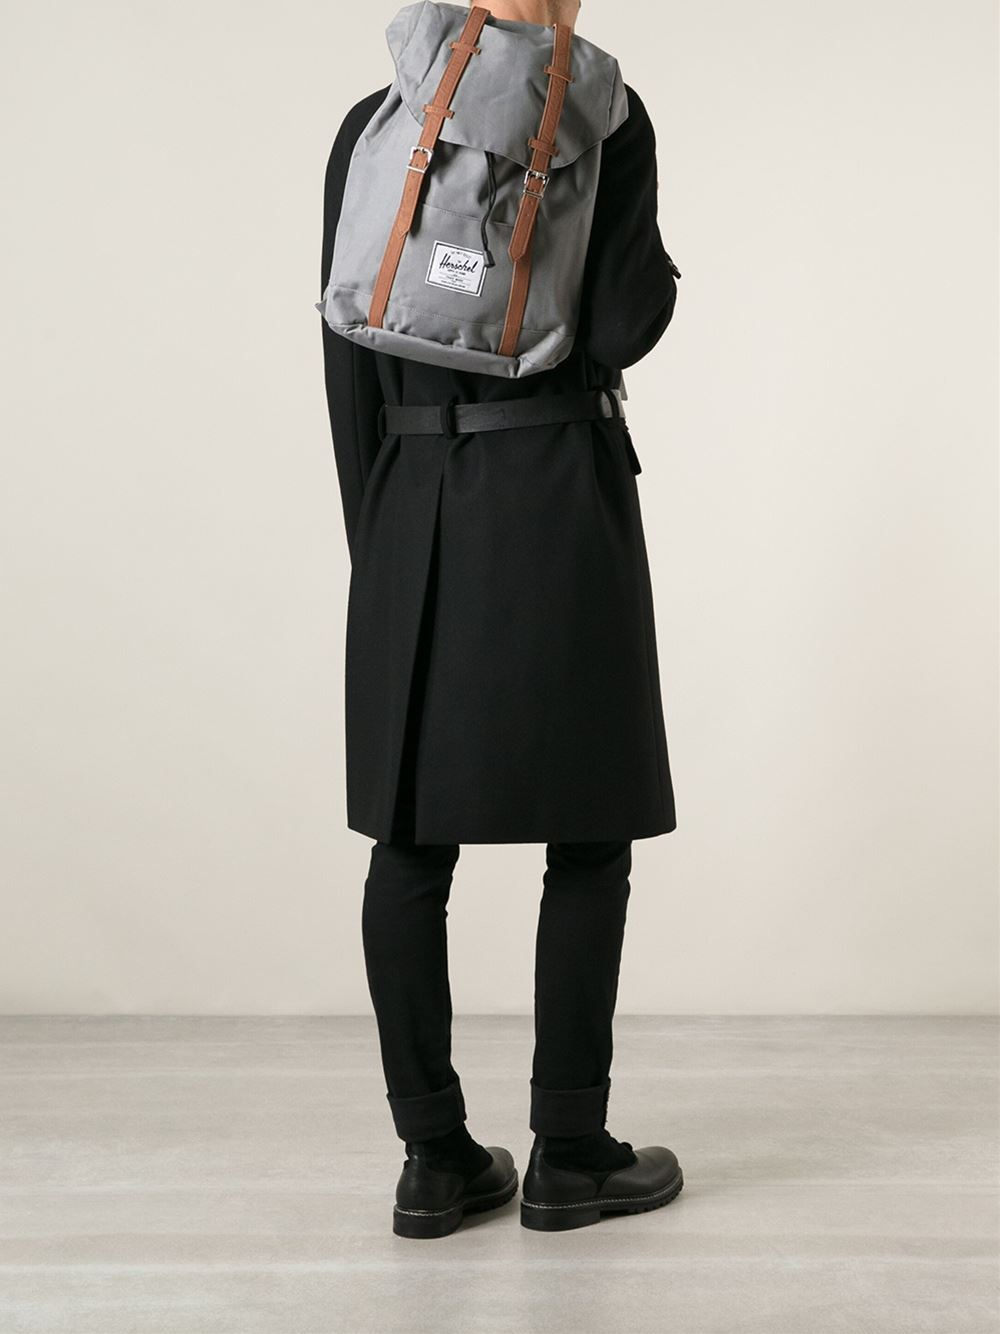 Lyst - Herschel Supply Co. Mid-volume Little America Backpack in ... 55bb15a0be985